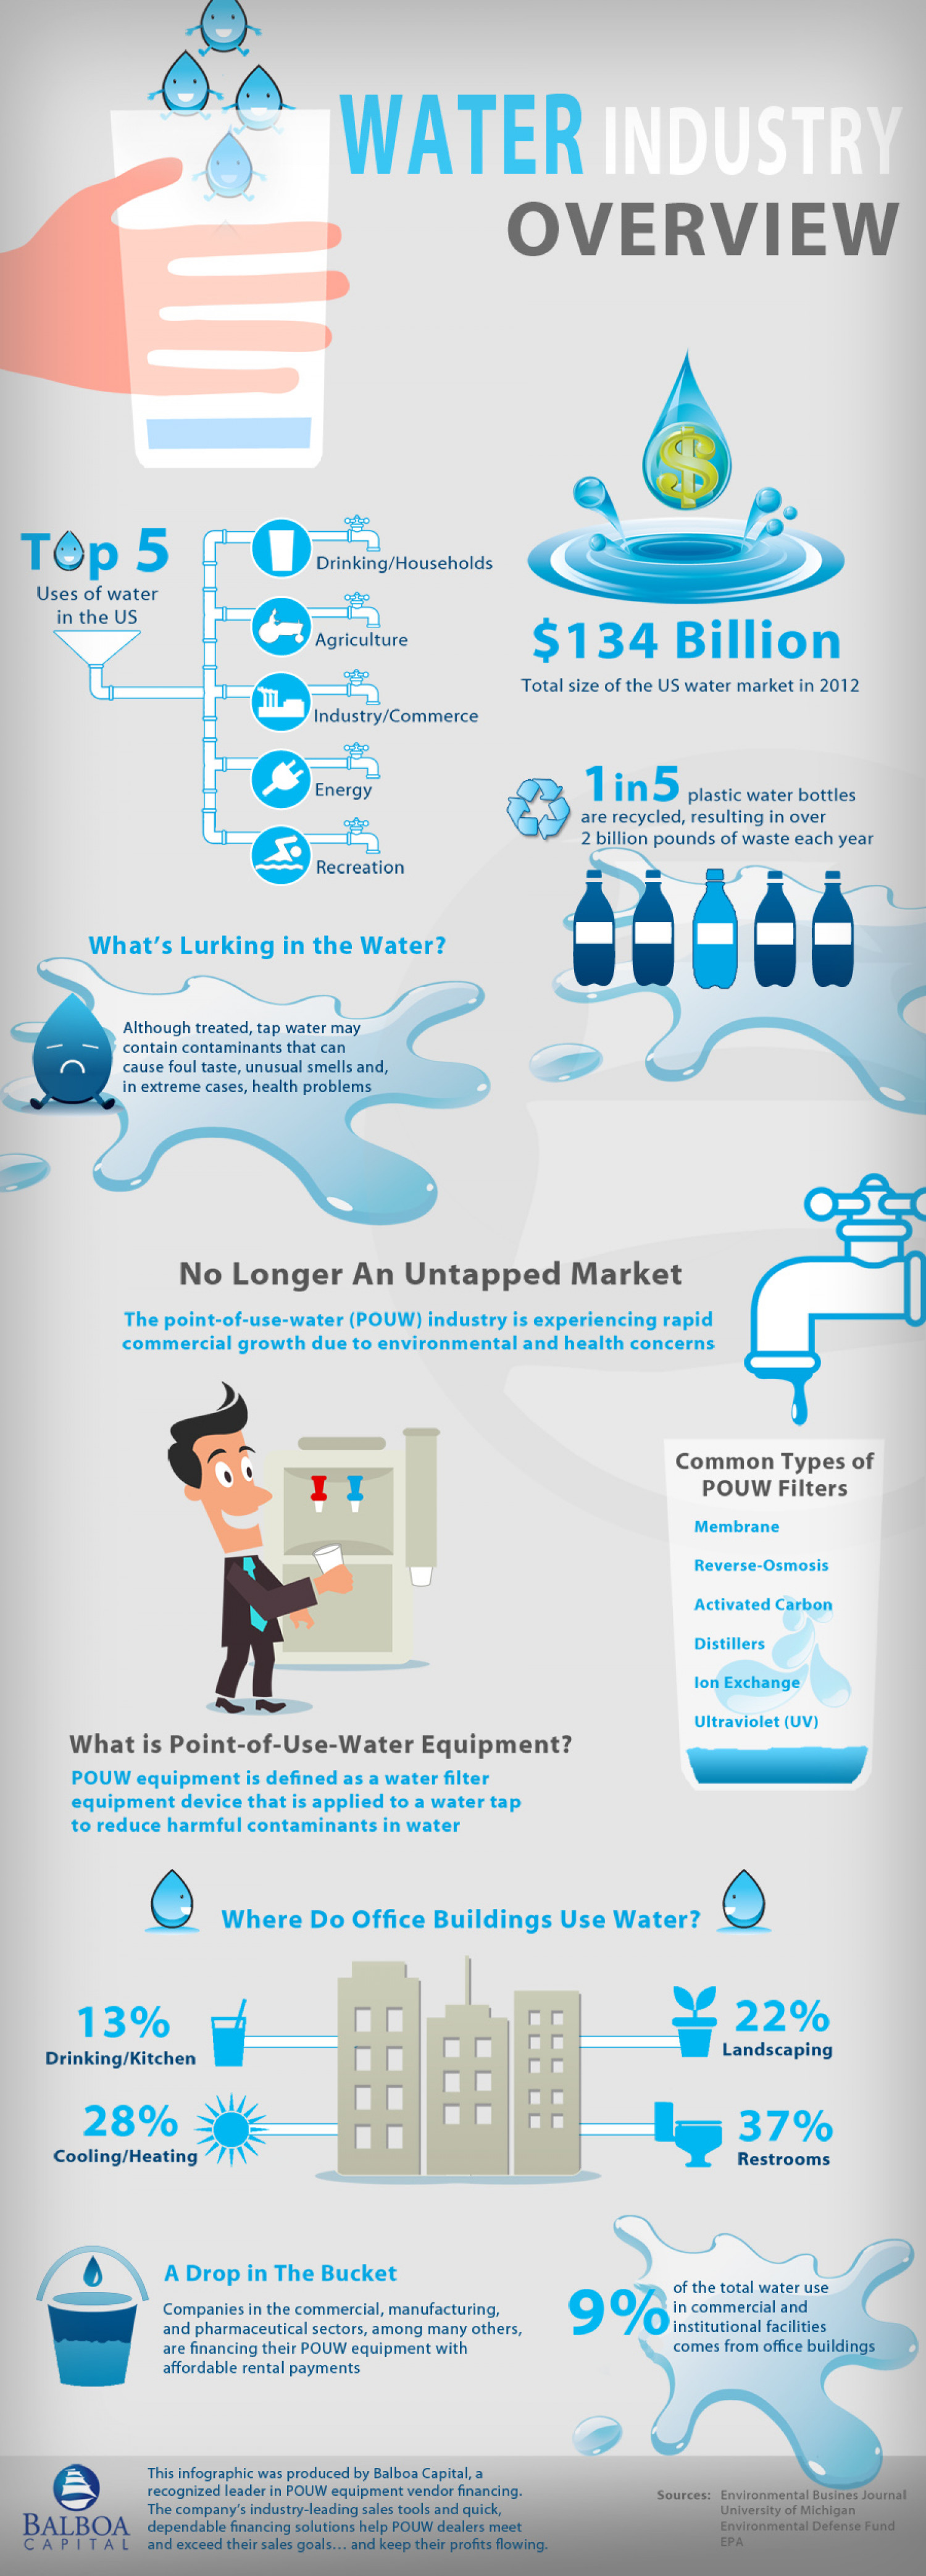 Over View Of Water Industry Infographic